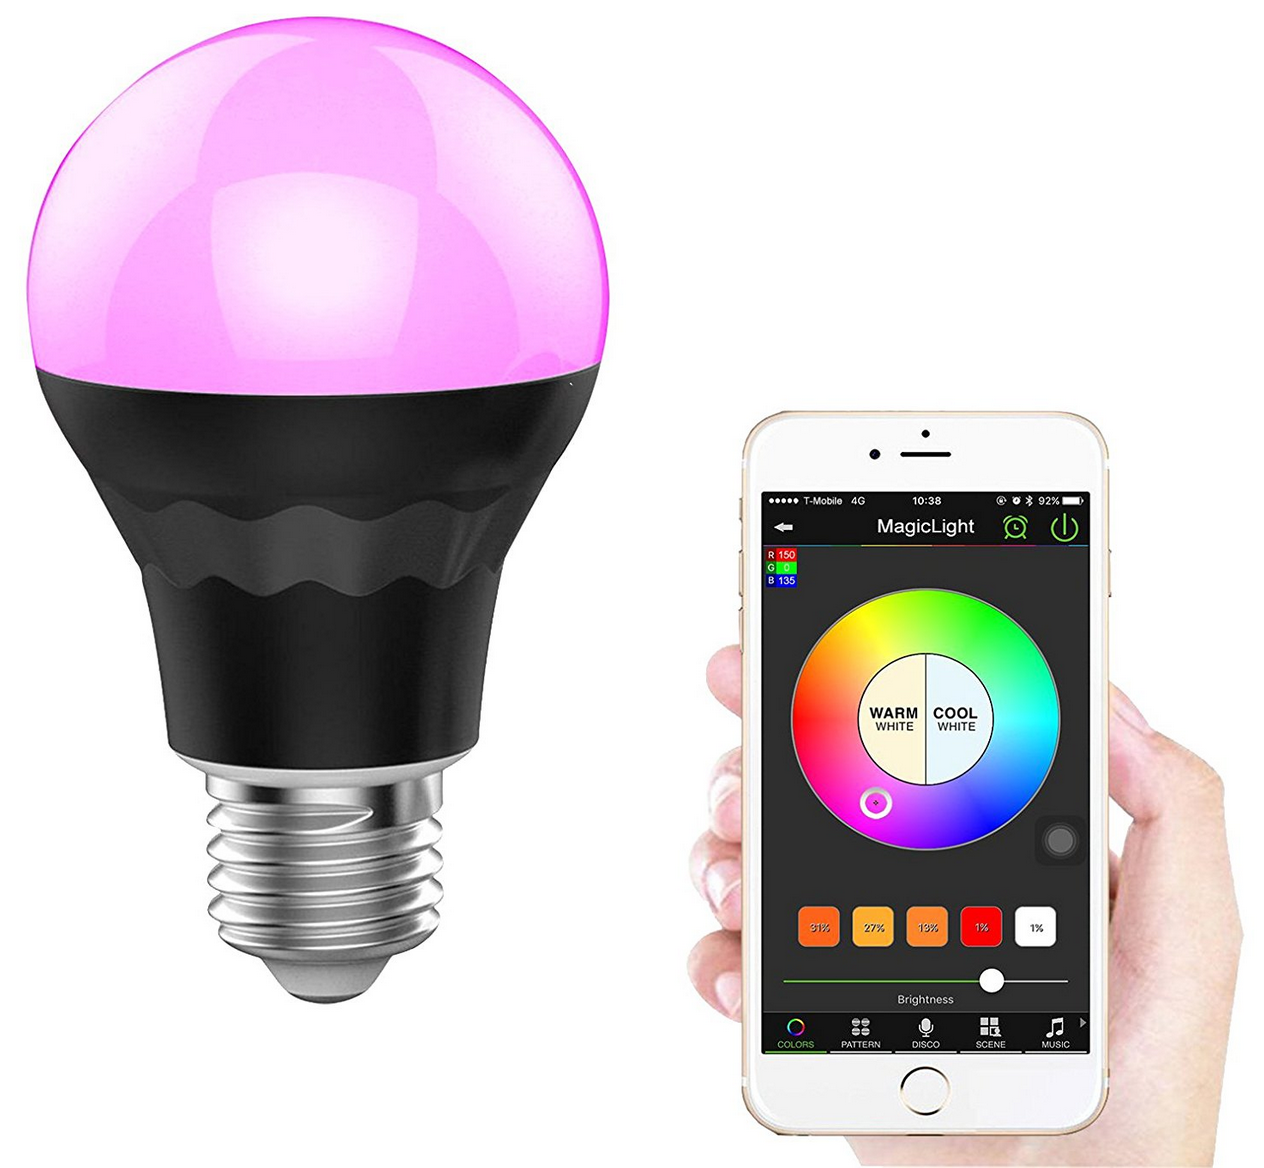 Discover 10 Of The Best Smart Led Light Bulbs Read Through The Reviews And Buy One That Is In Line With Your Smart Light Bulbs Led Night Light Led Light Bulb